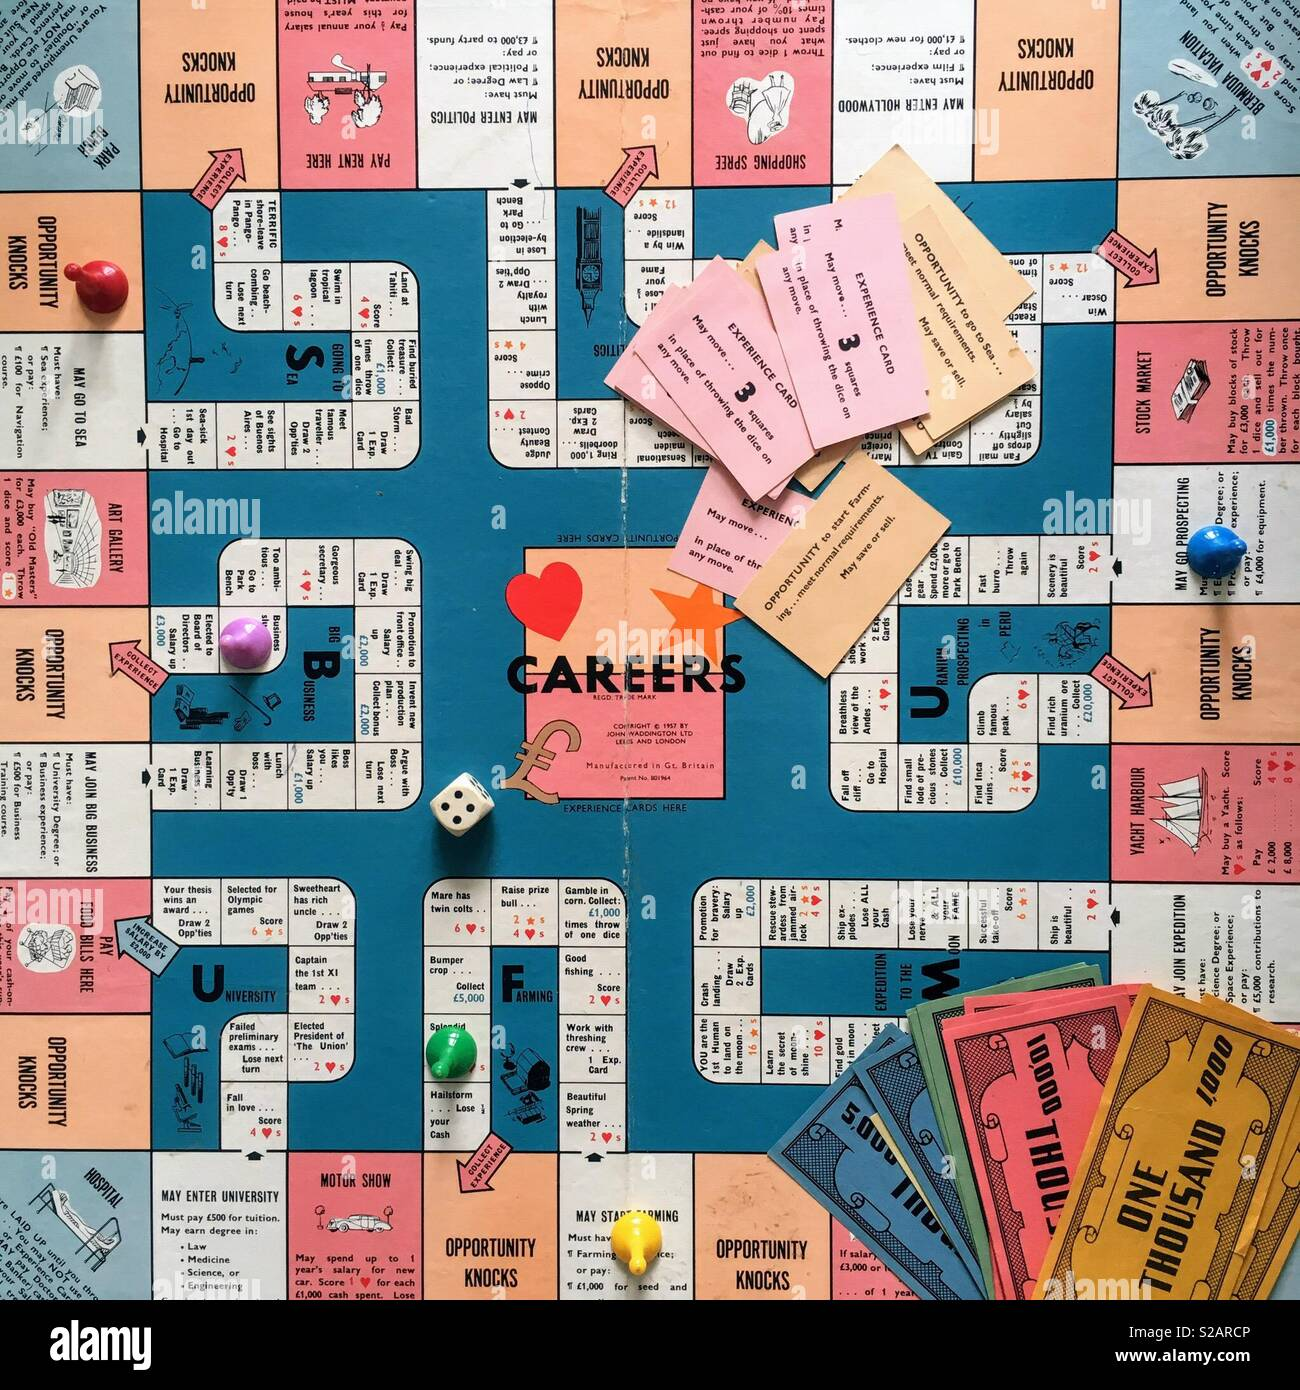 Game of careers board from above - Stock Image